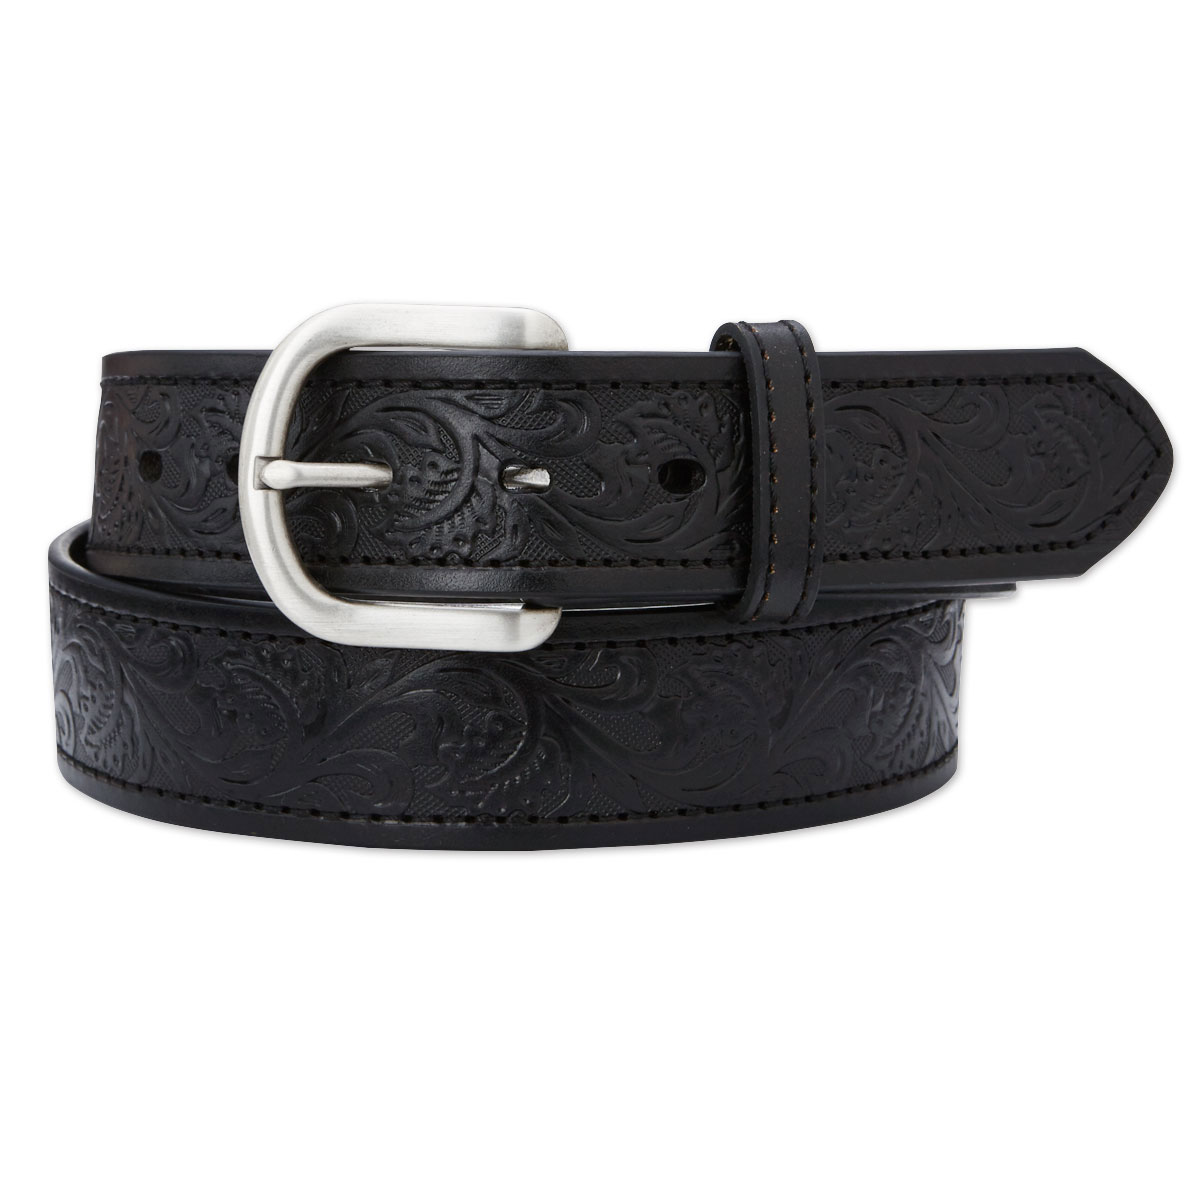 Ariat Men's Embossed Leather Belt